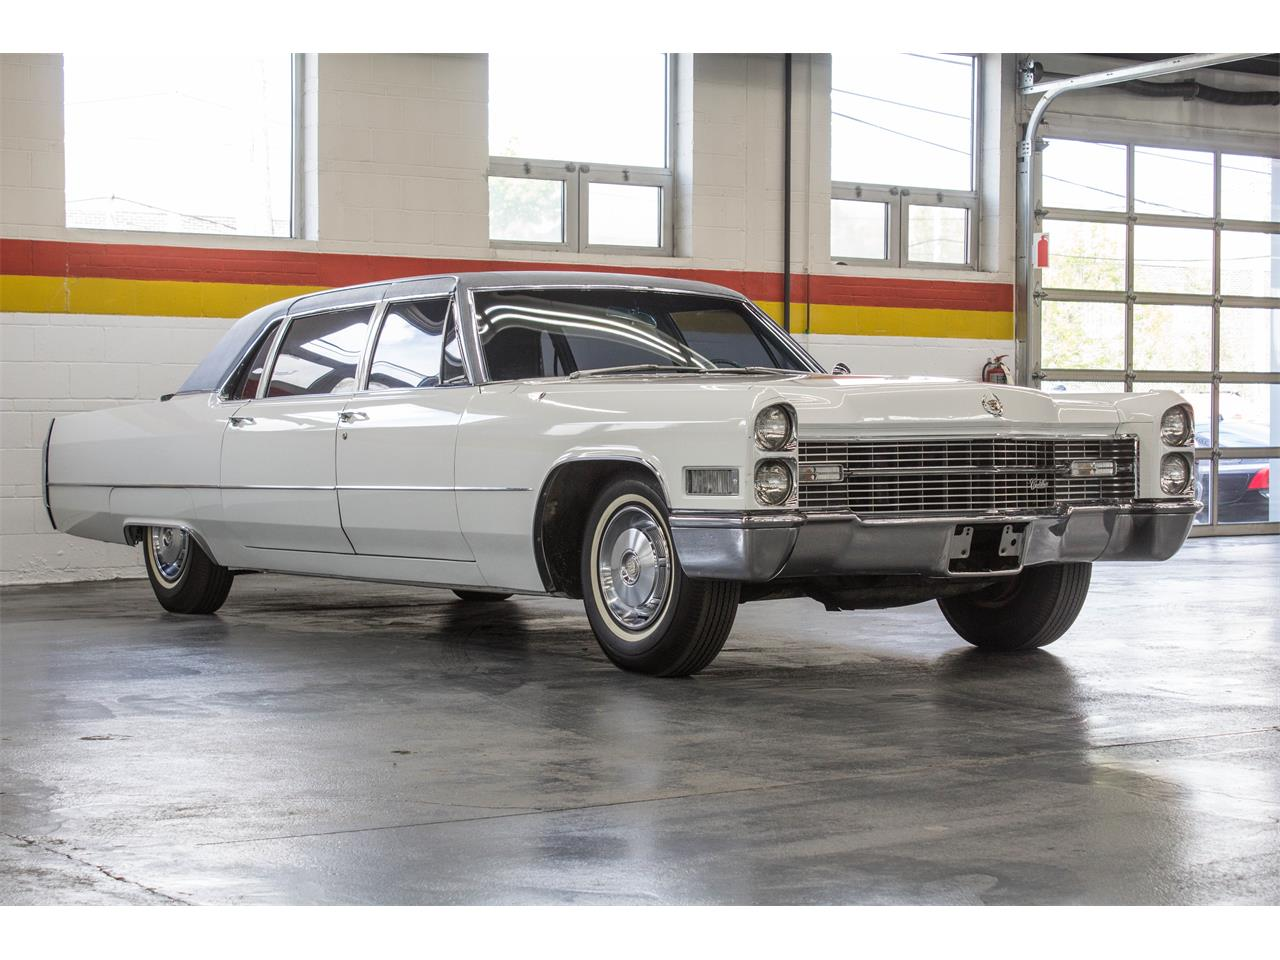 Large Picture of Classic 1966 Fleetwood Limousine located in Quebec - $49,995.00 Offered by John Scotti Classic Cars - NKXQ